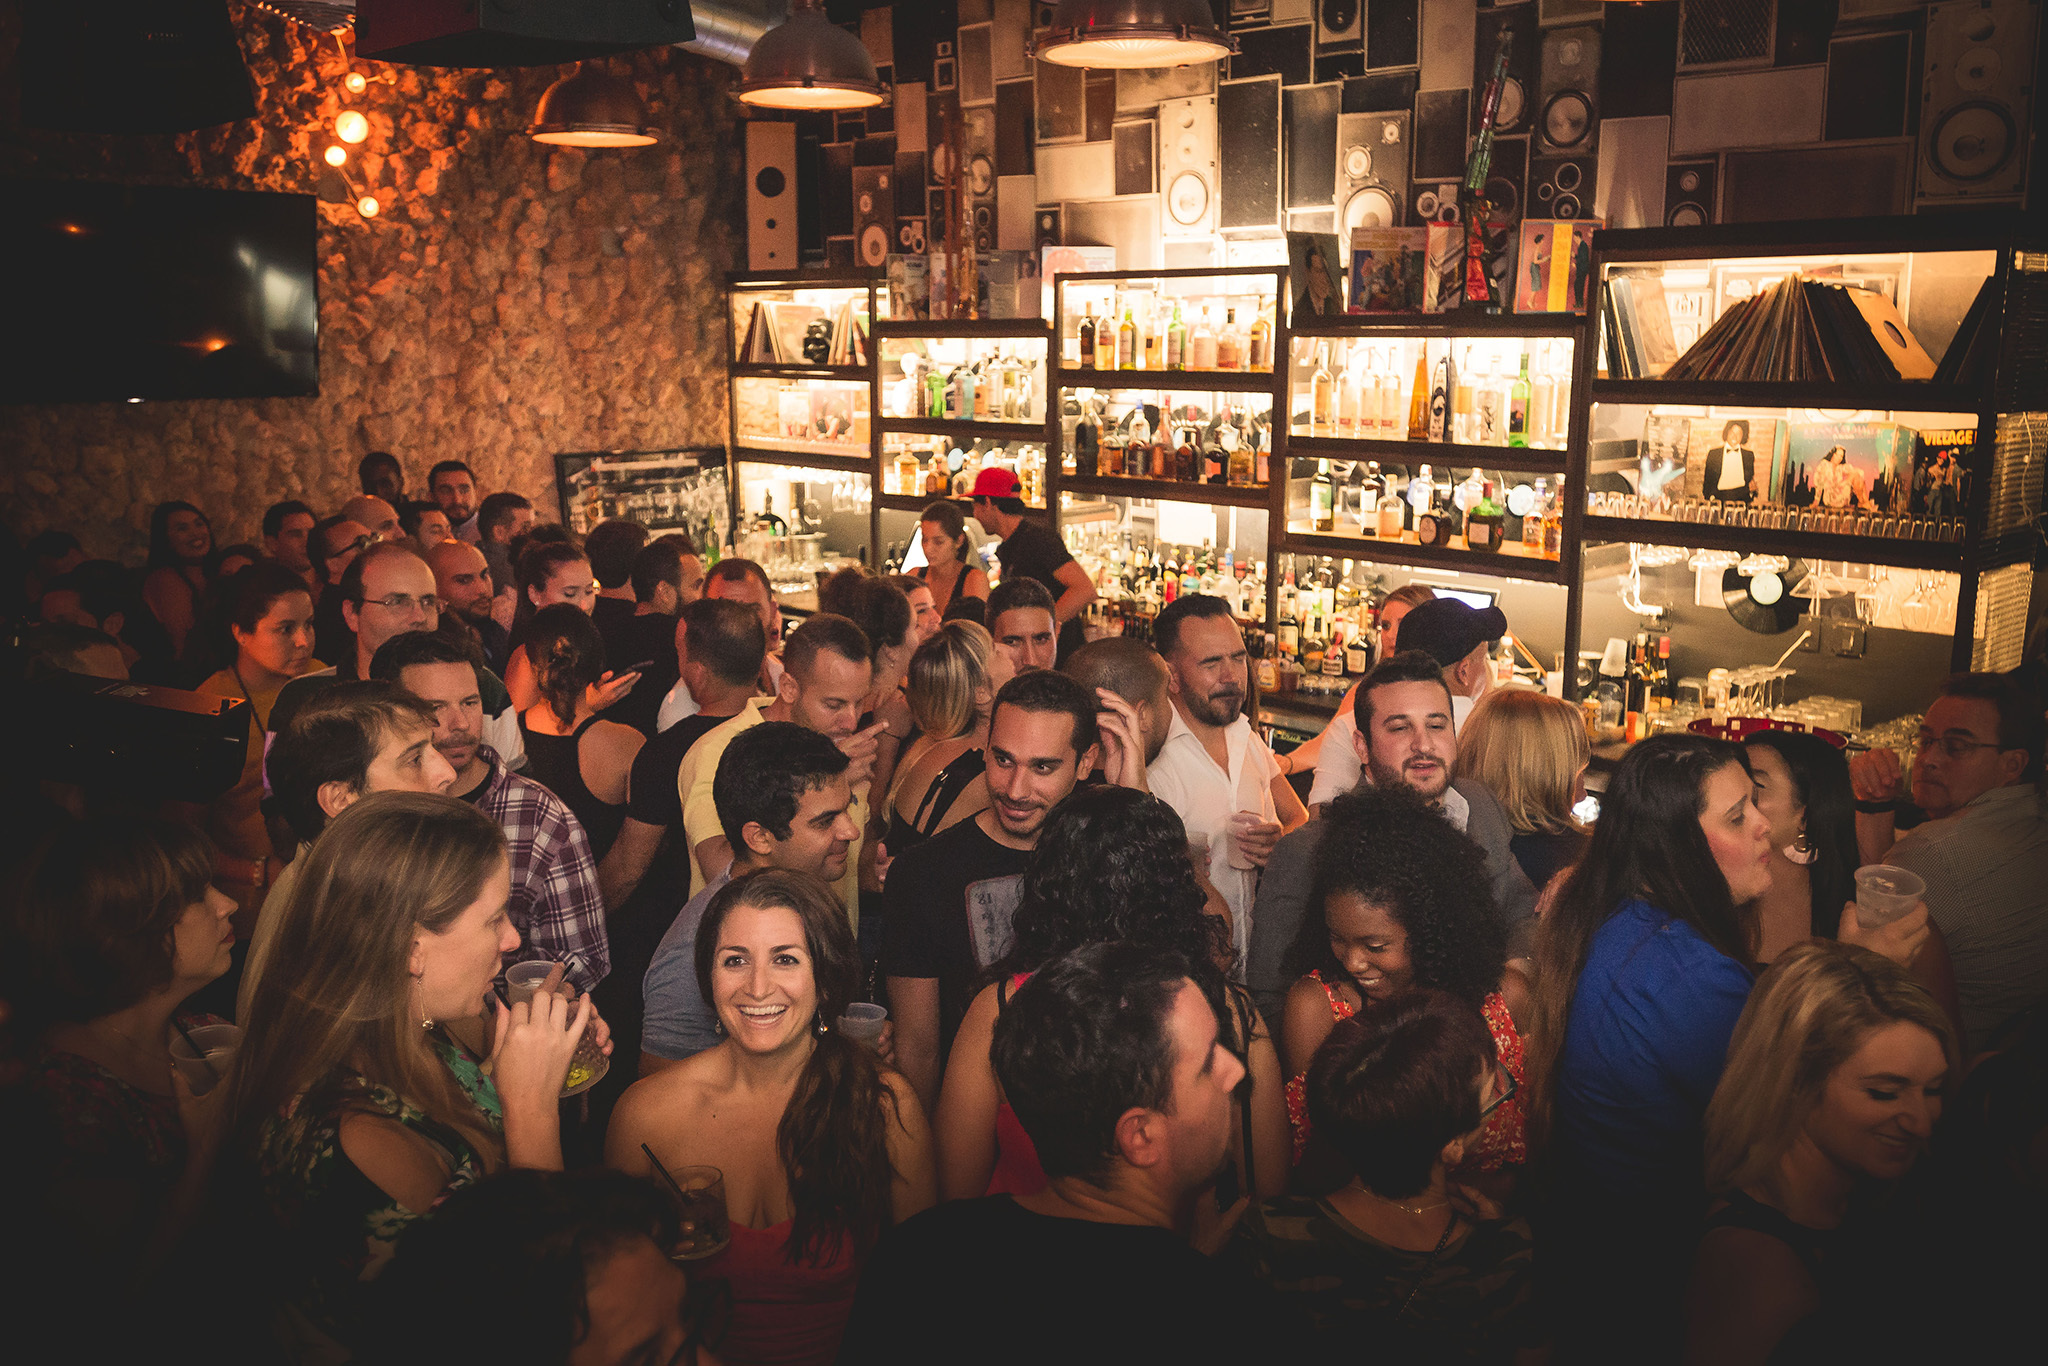 Best bars in Brickell for an epic night out